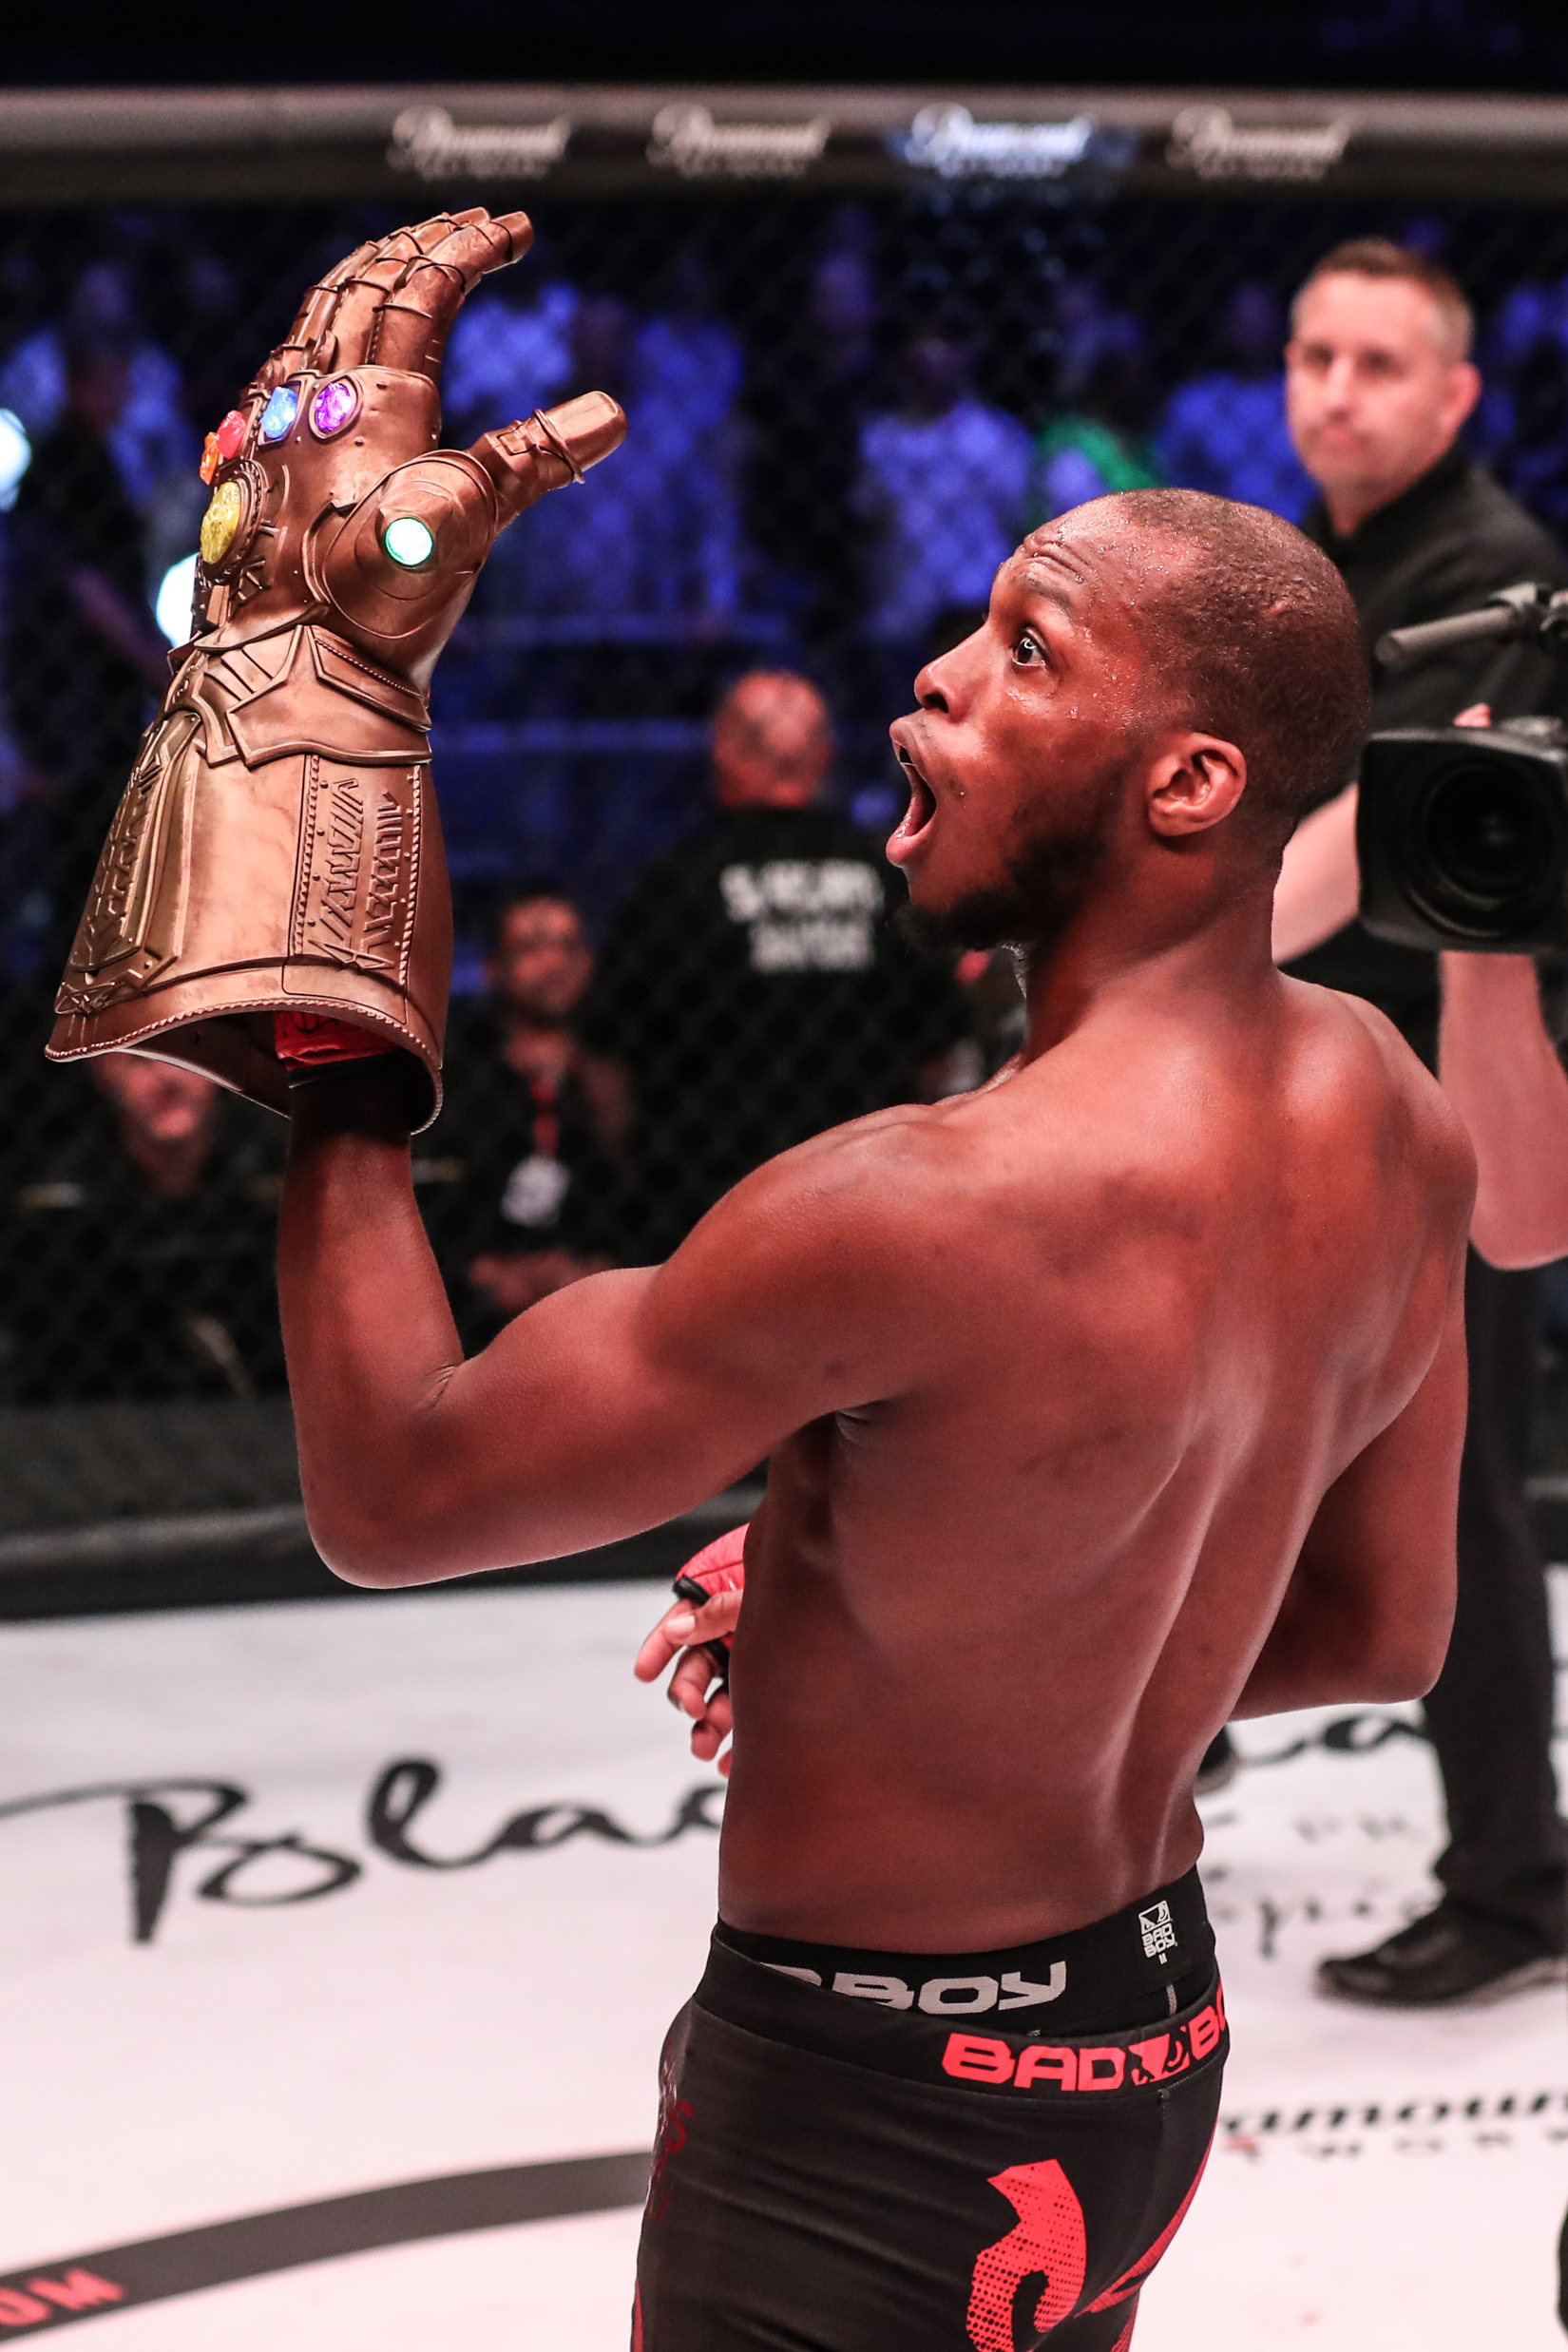 Michael 'Venom' Page expects to send Paul Daley into retirement with victory in Bellator grudge match